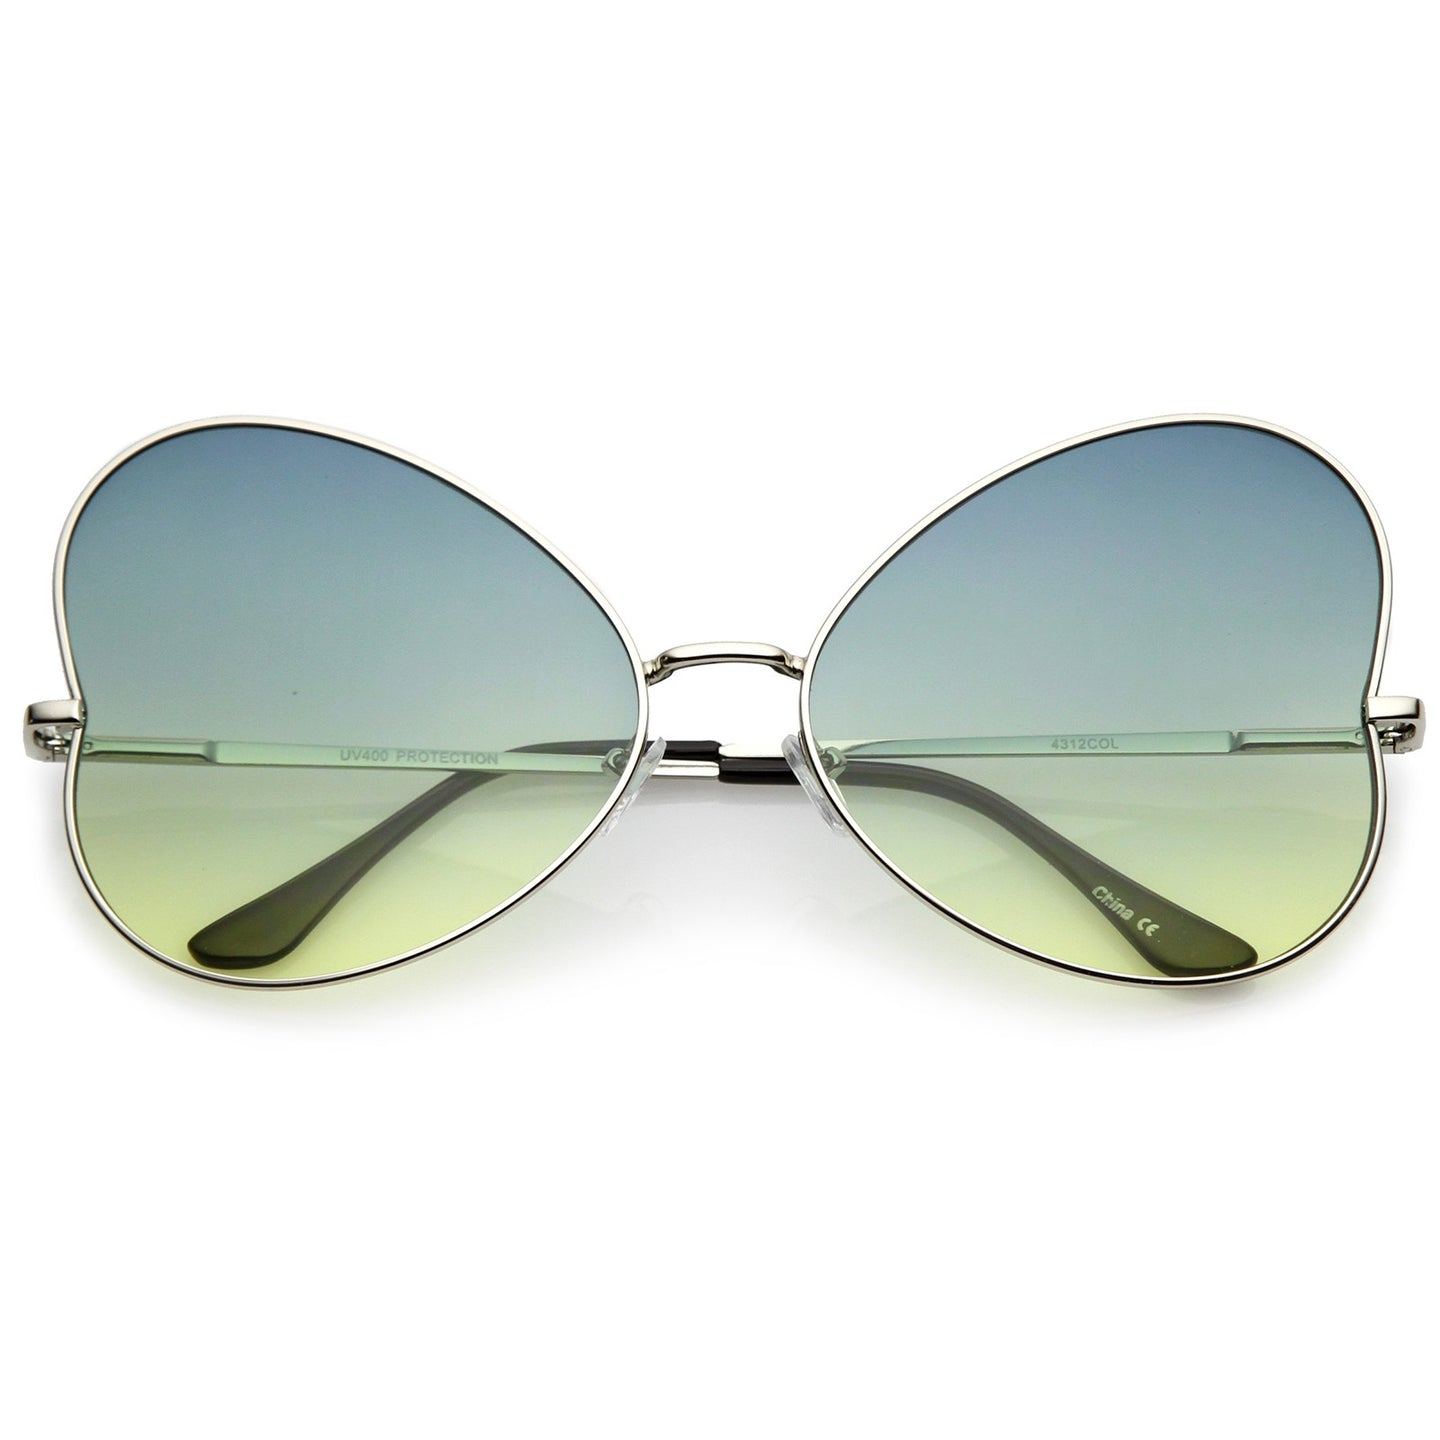 Women's Oversize Ultra Slim Temple Gradient Flat Lens Butterfly Sunglasses 61mm (Silver / Green-Yellow) - shoppingandfreebies